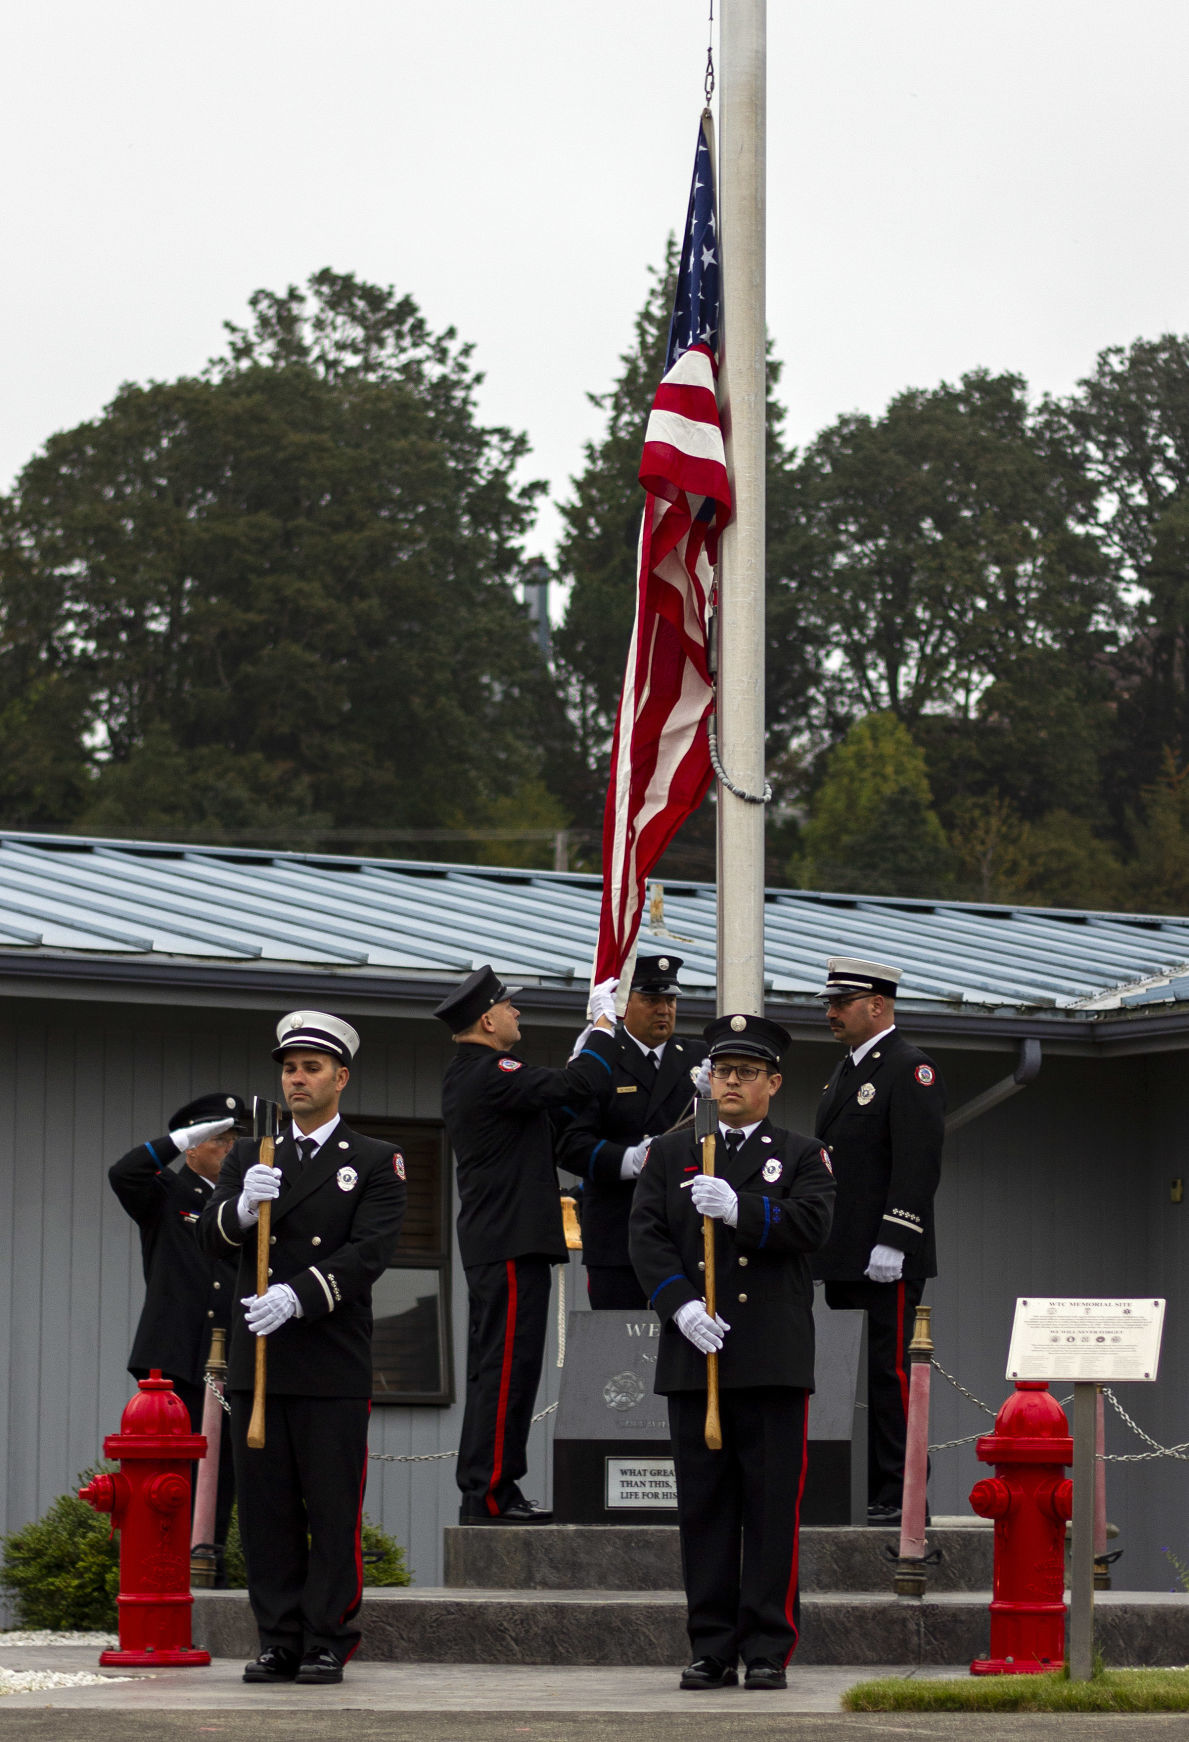 Cowlitz 2 Fire & Rescue holds morning 9/11 ceremony